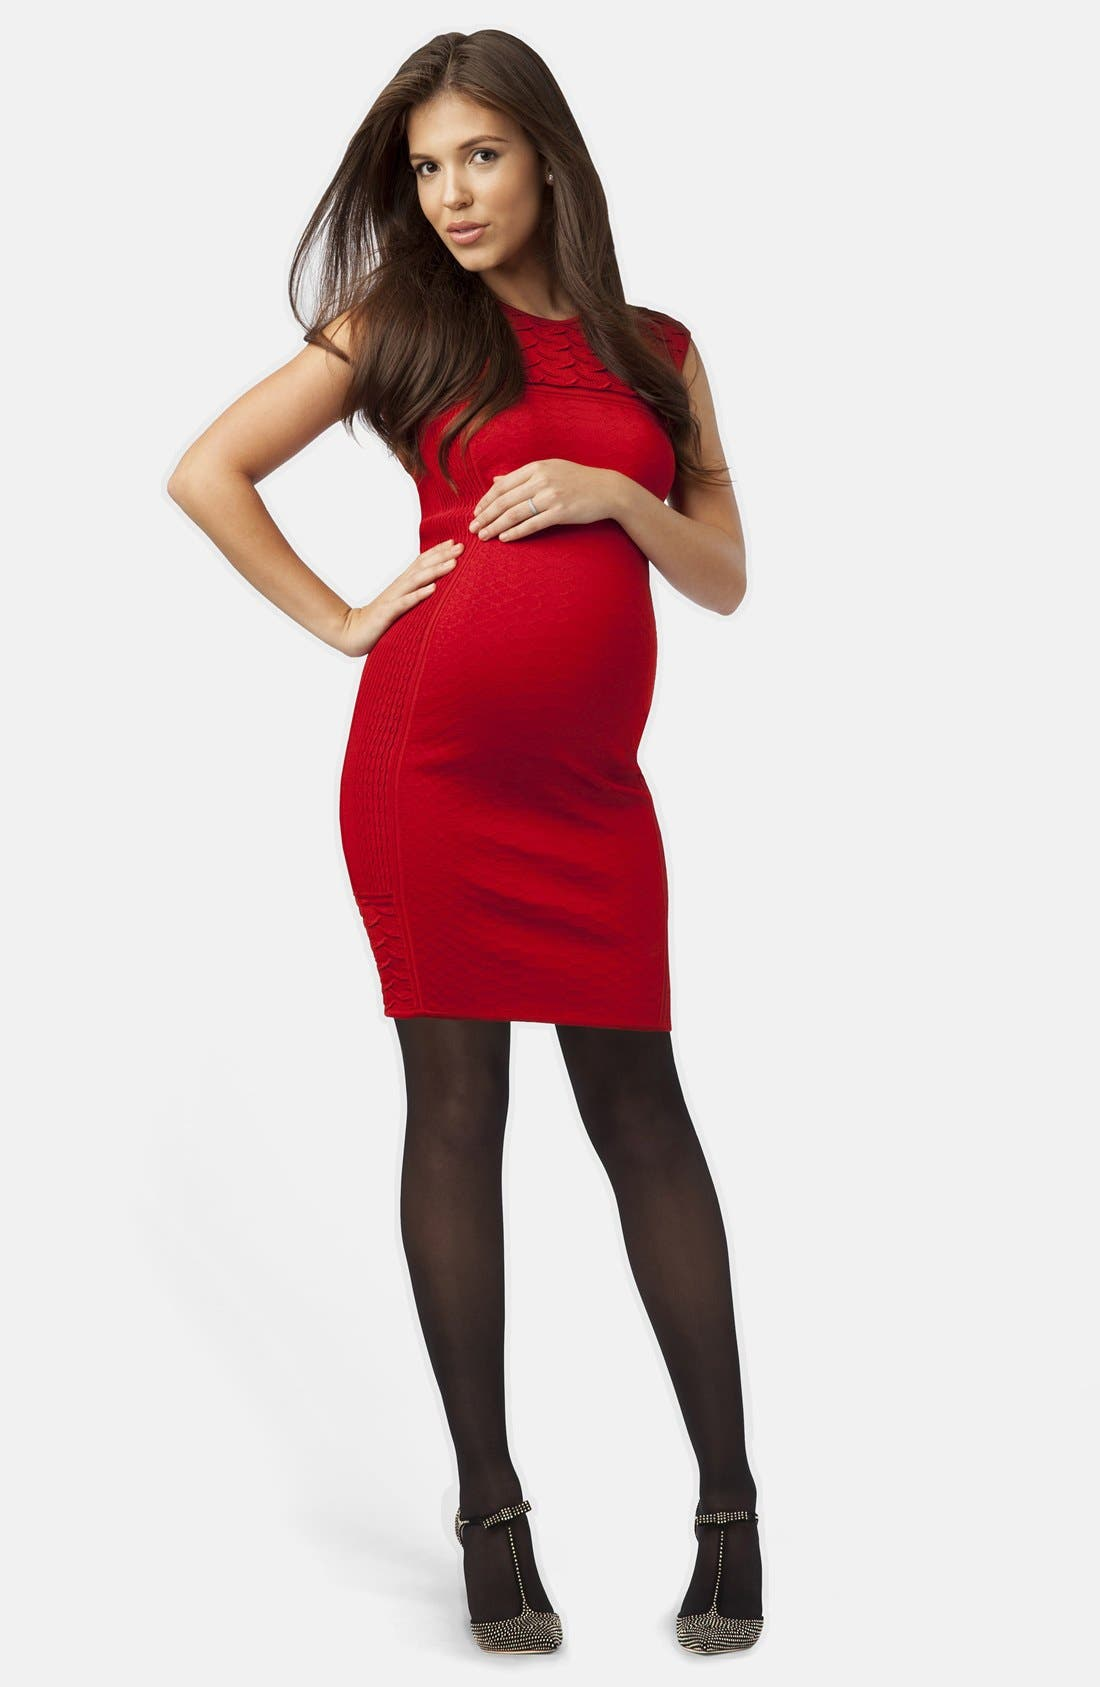 Graduated Compression Maternity Tights,                             Alternate thumbnail 2, color,                             Black